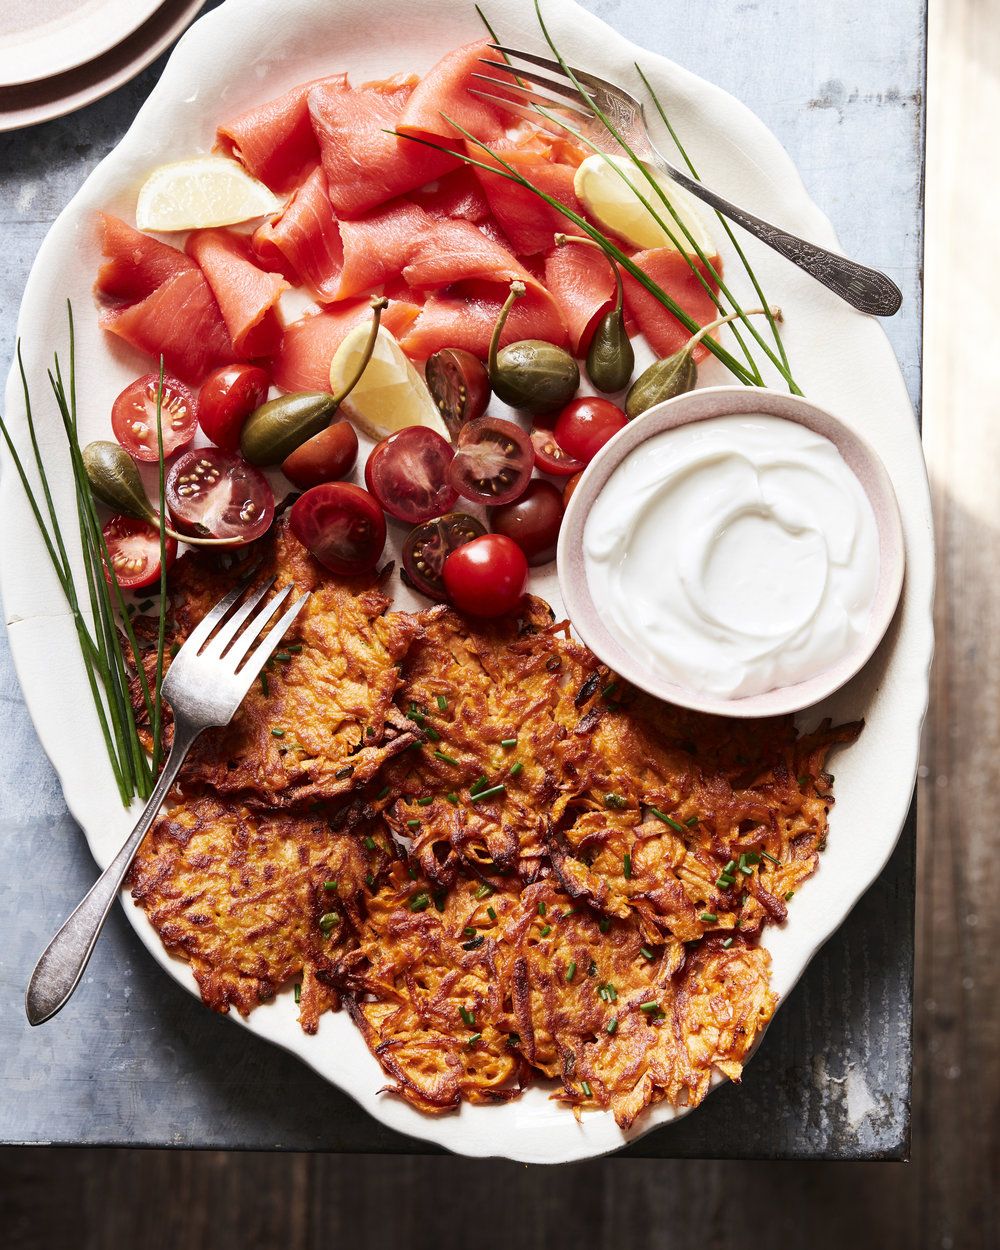 112018_JJ_SWEET_POTATO_LATKE_f.jpg